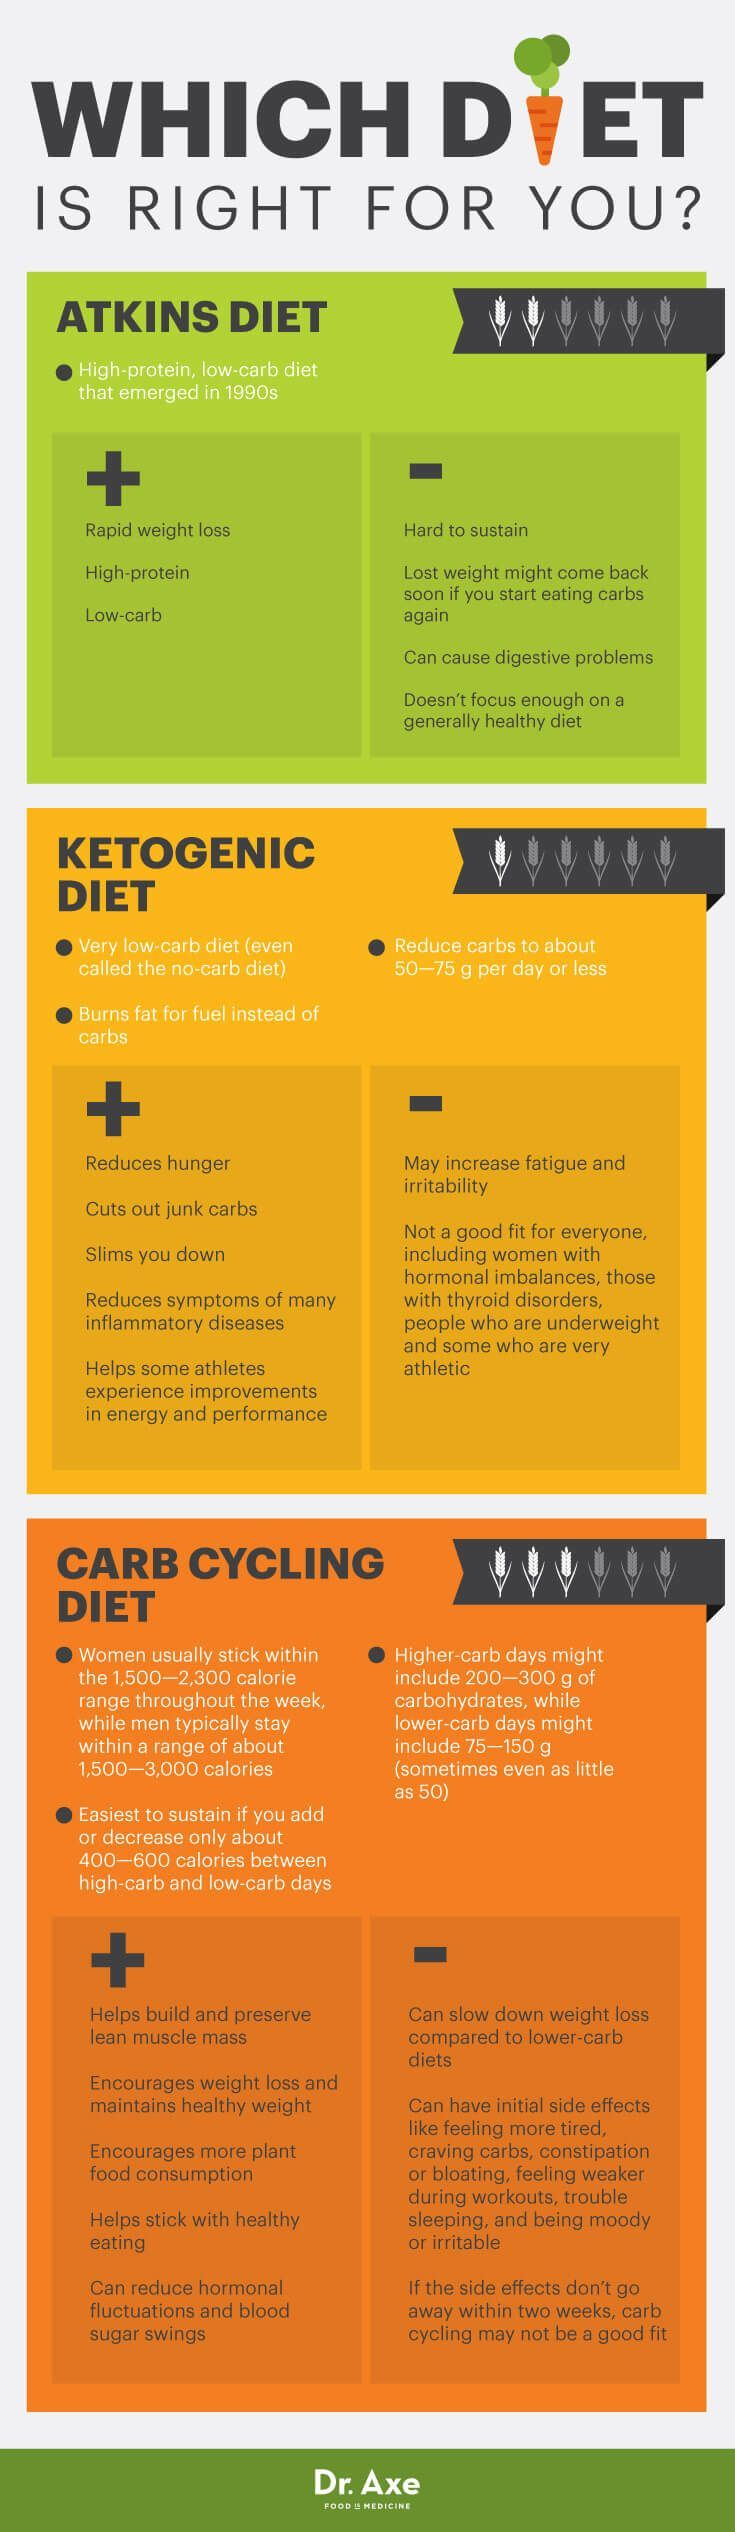 Carb cycling diet vs. Atkins diet vs. ketogenic diet - Dr. Axe http://www.DrAxe.com #health #holistic #natural